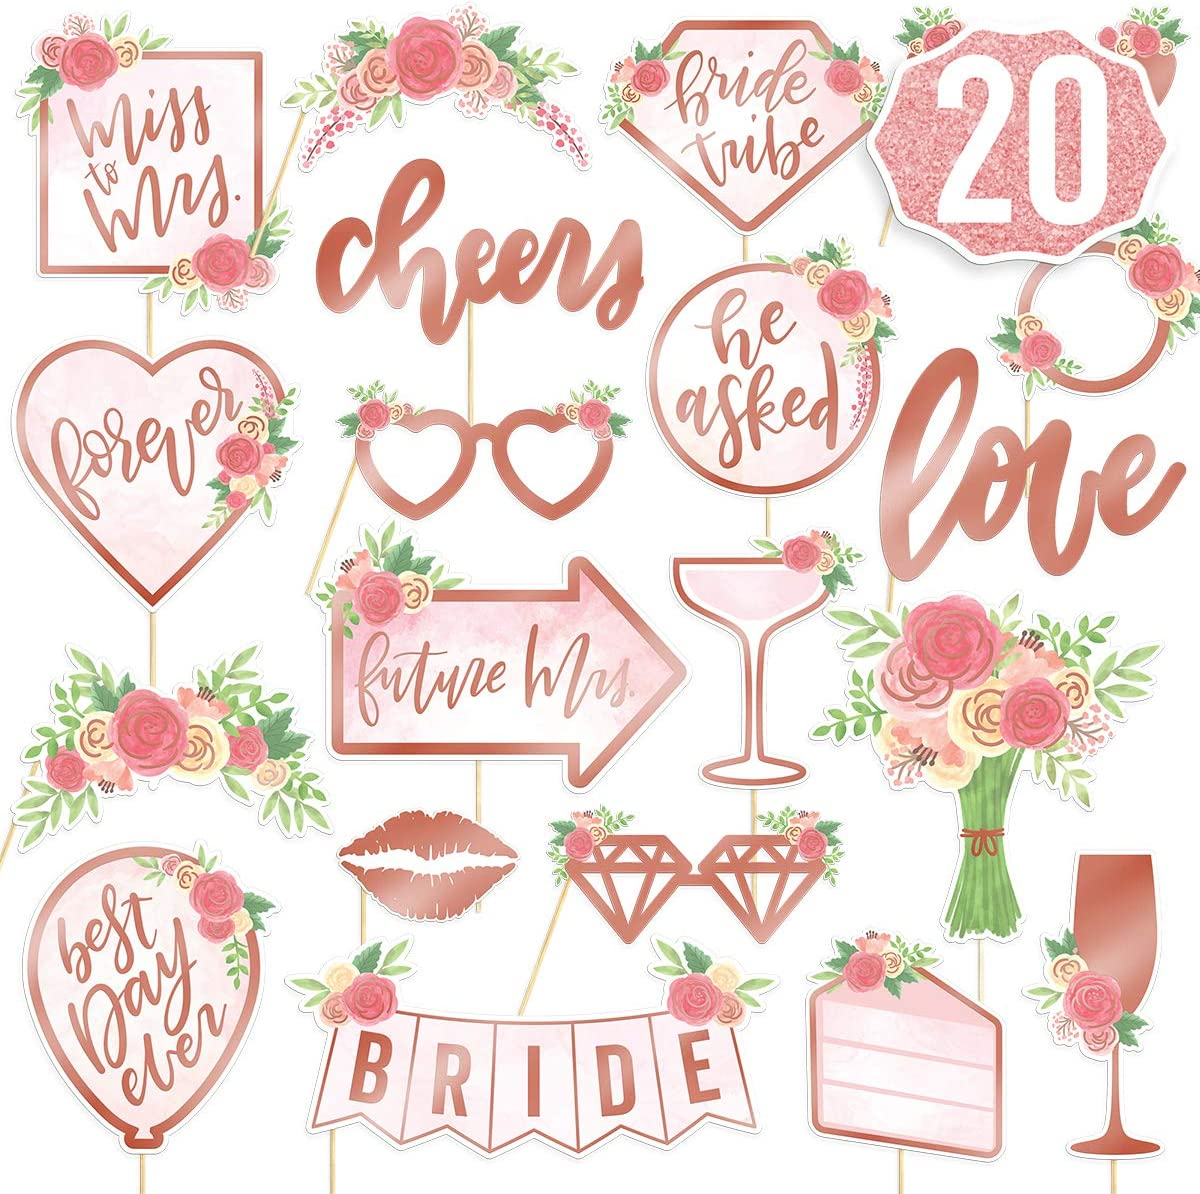 Fetti Bachelorette Party Decorations Rose Gold Glitter Kit xo Bridal Shower S